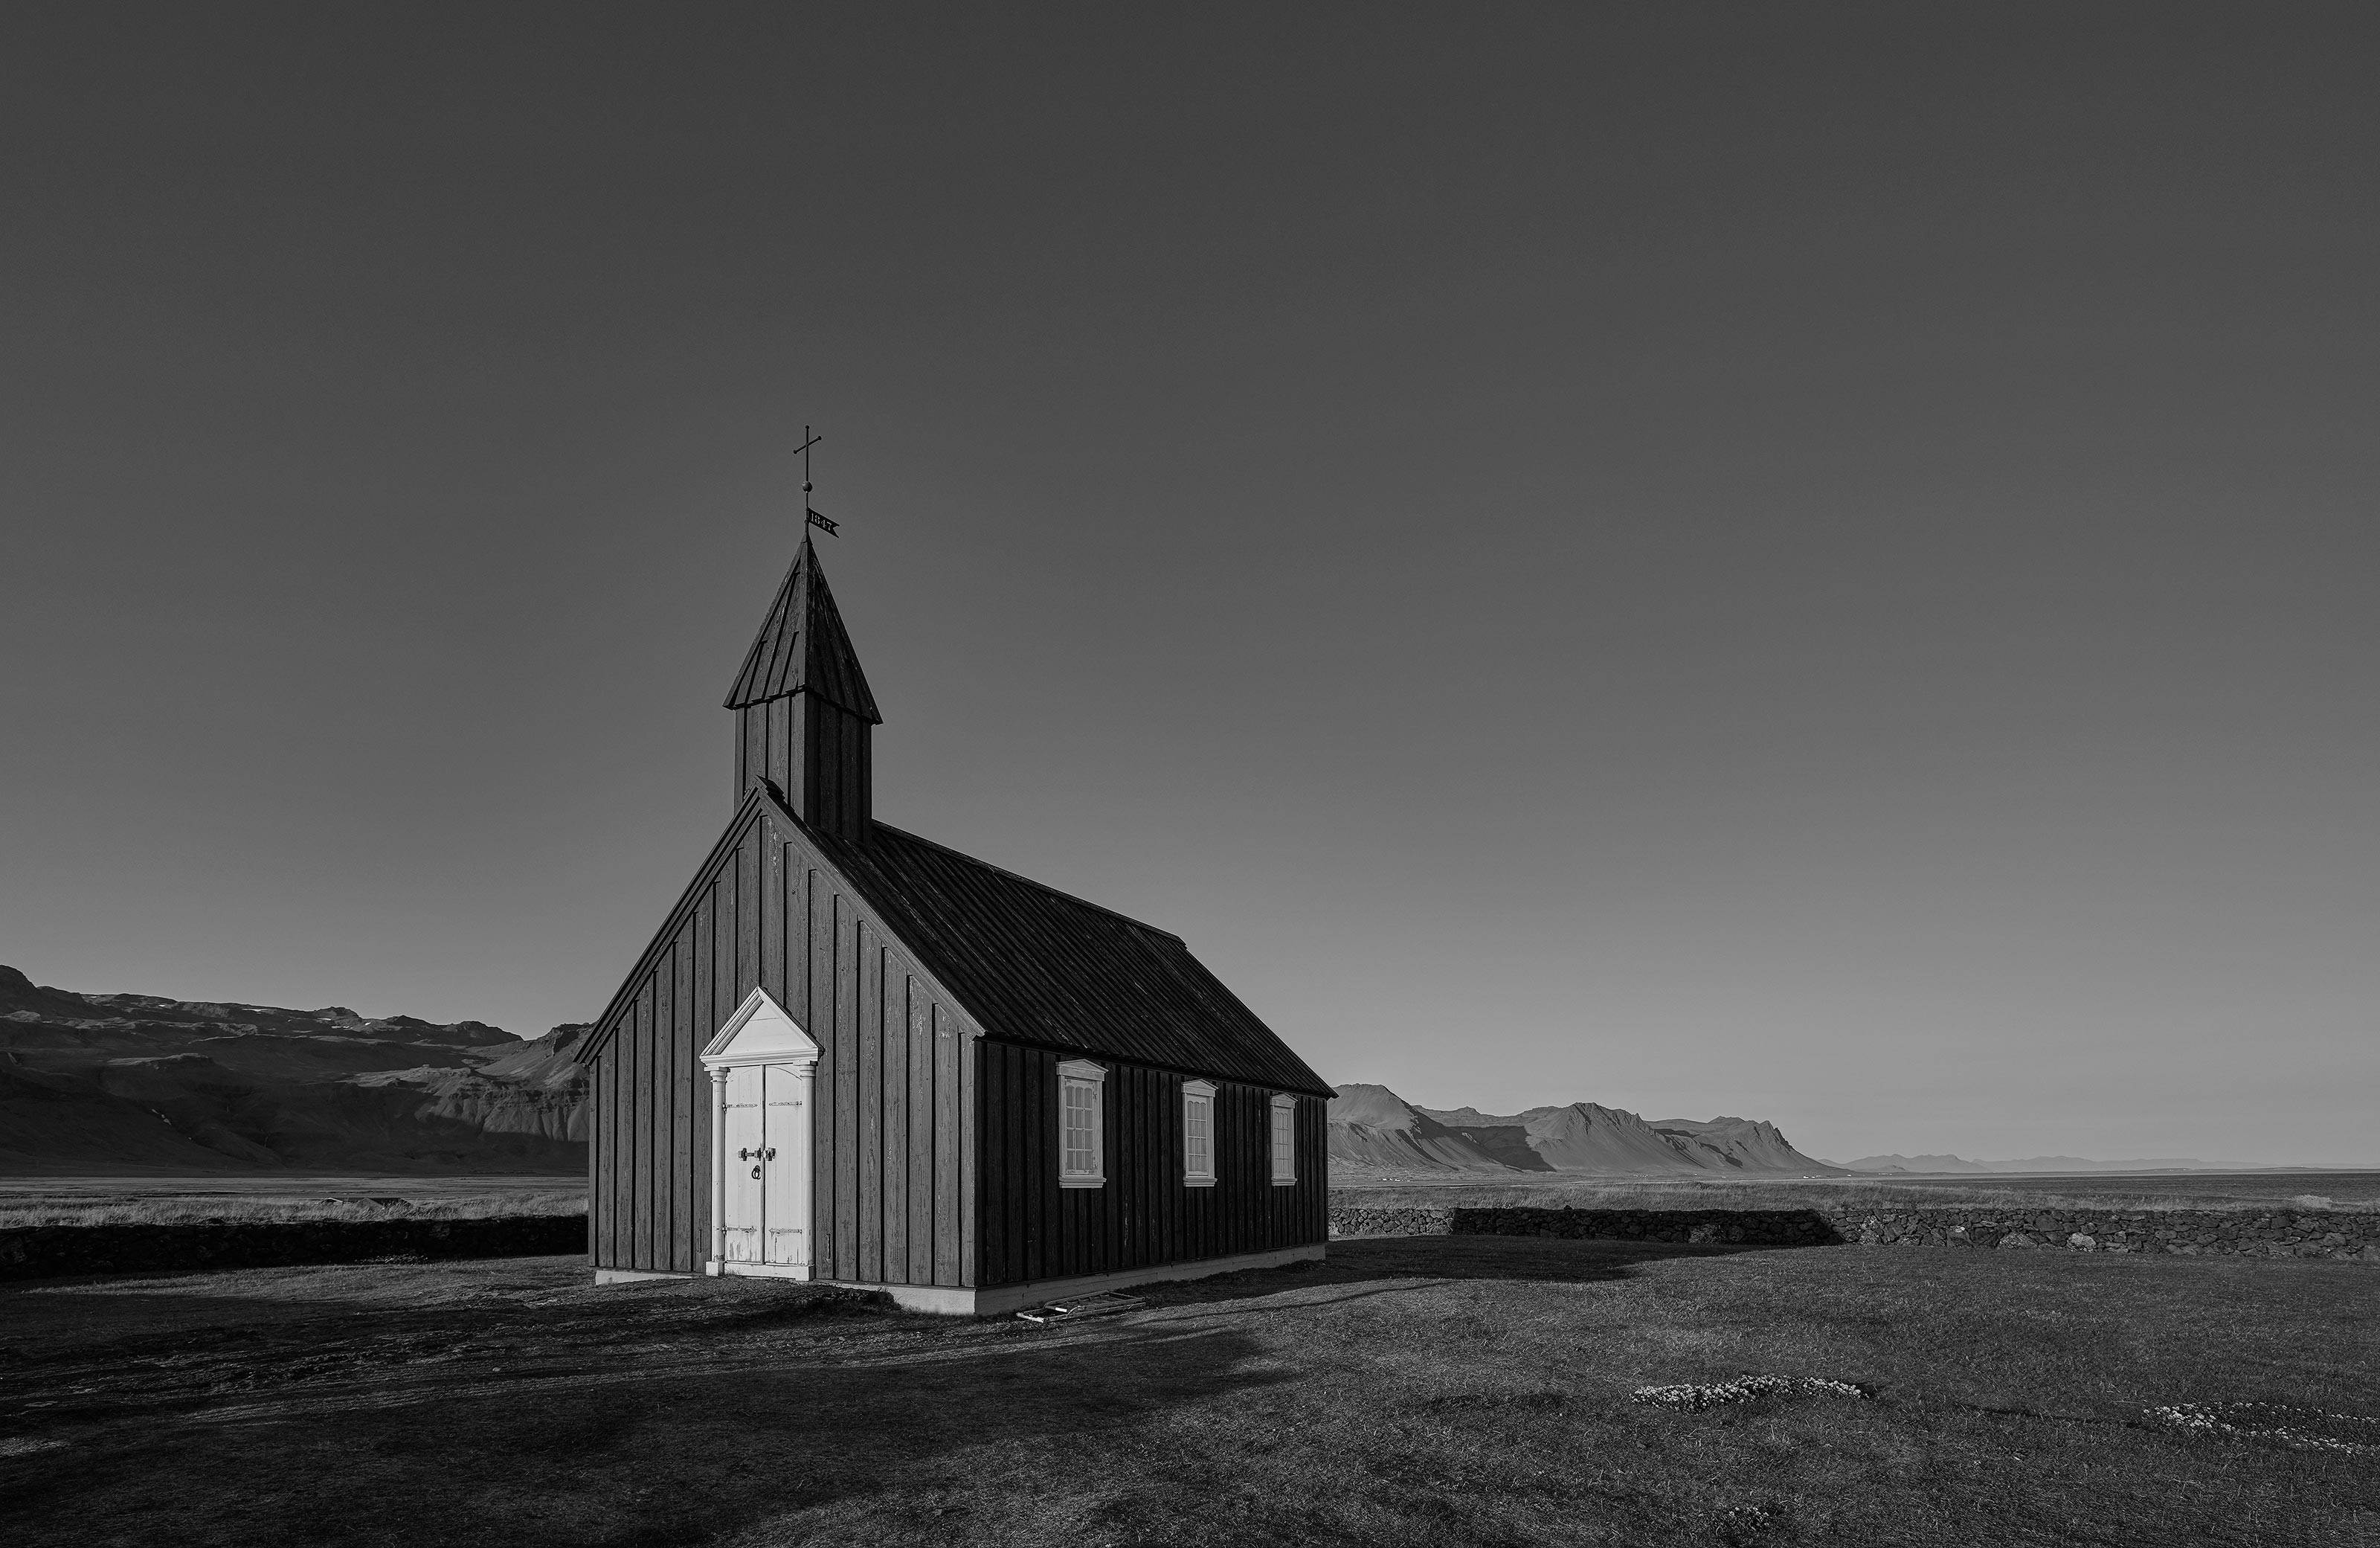 BRAD_STANLEY_CHURCH_02